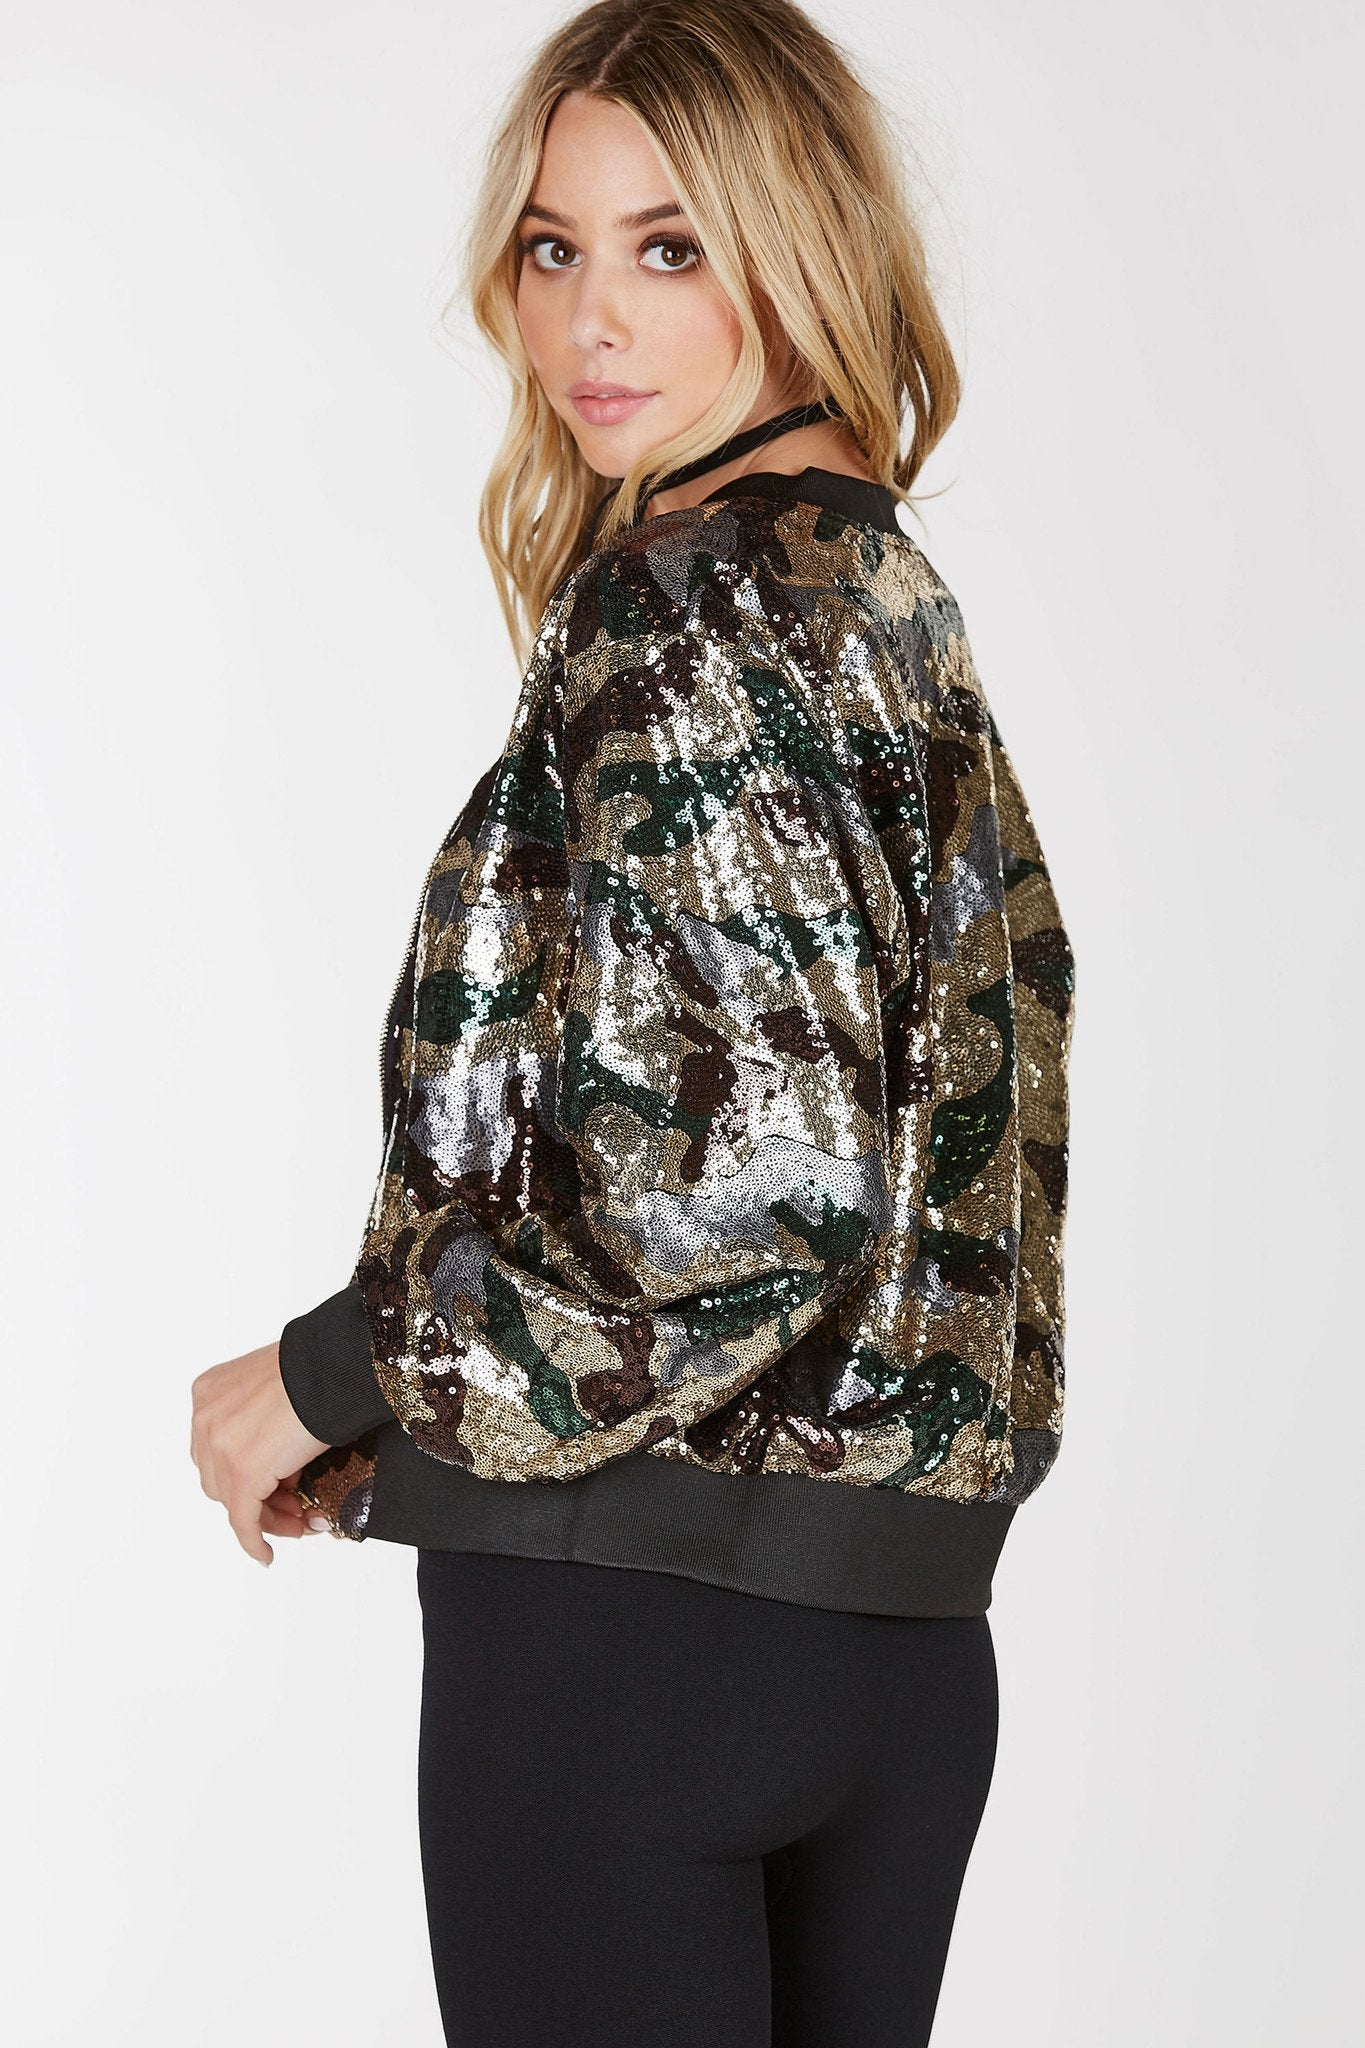 /Ribbed hem/Front zip closure/Camo pattern through/Sequin finish